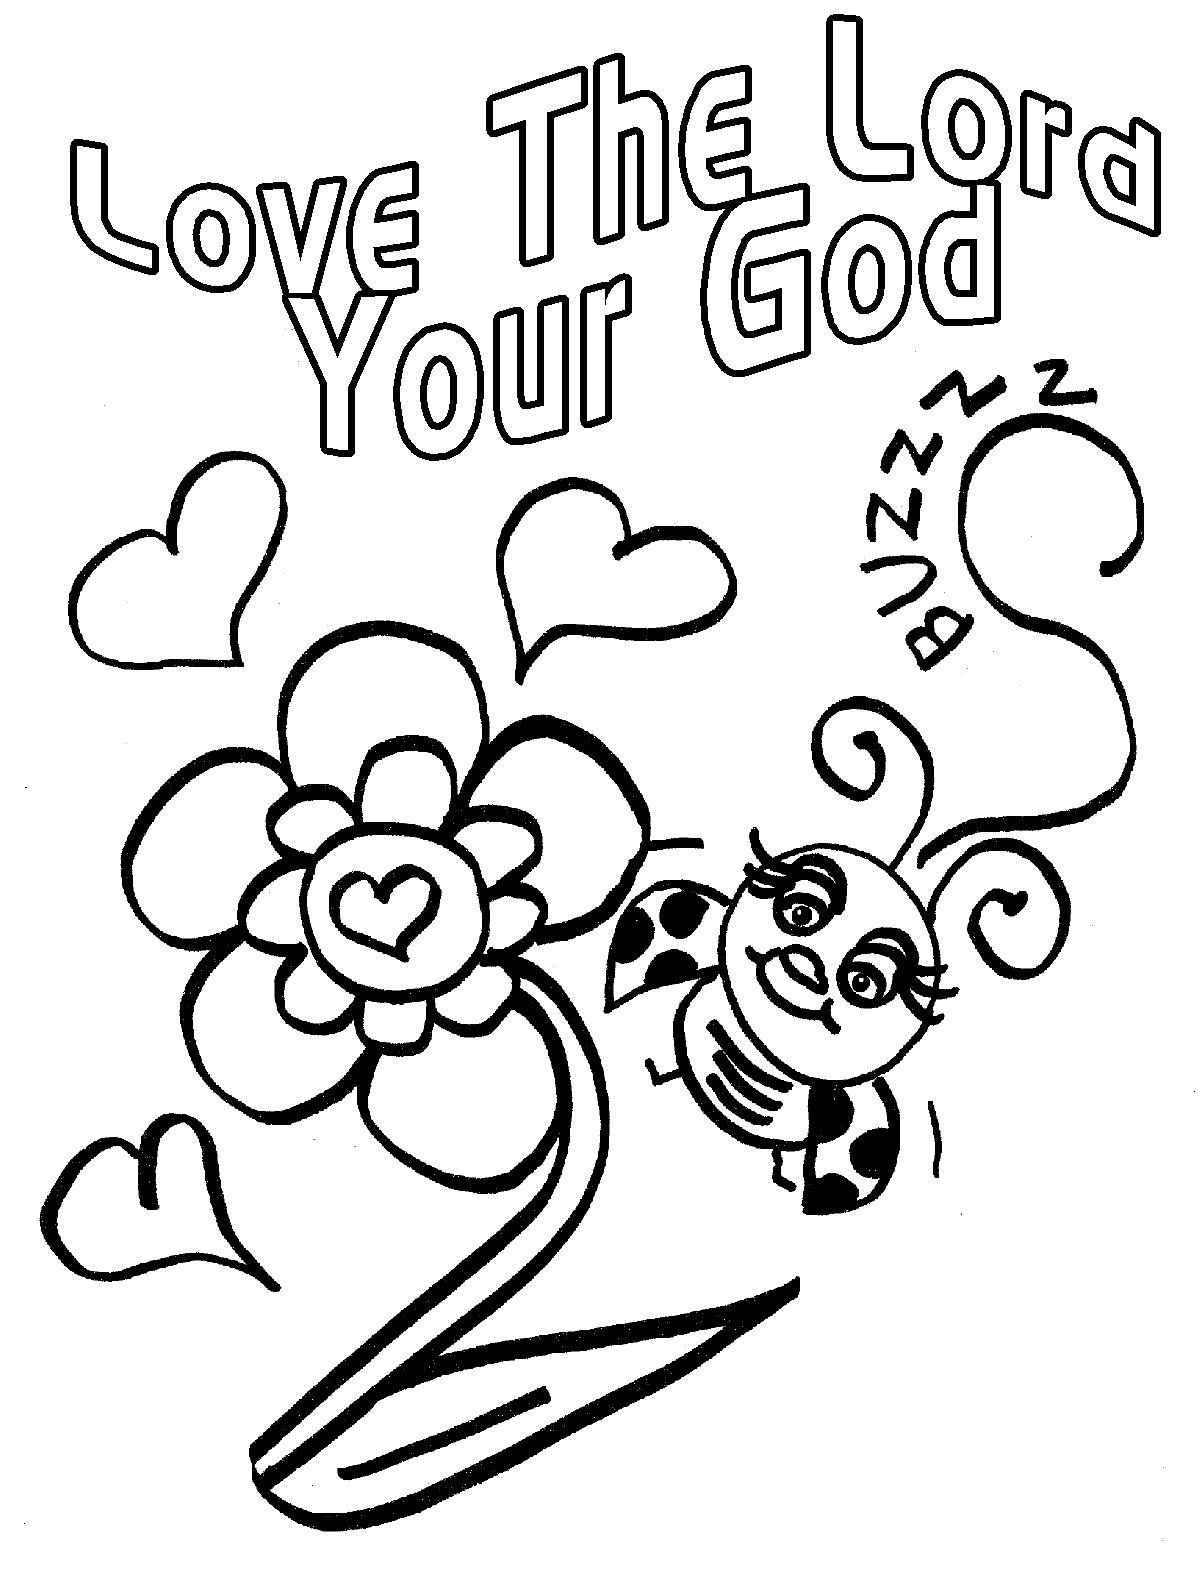 christian valentine coloring pages - photo#9